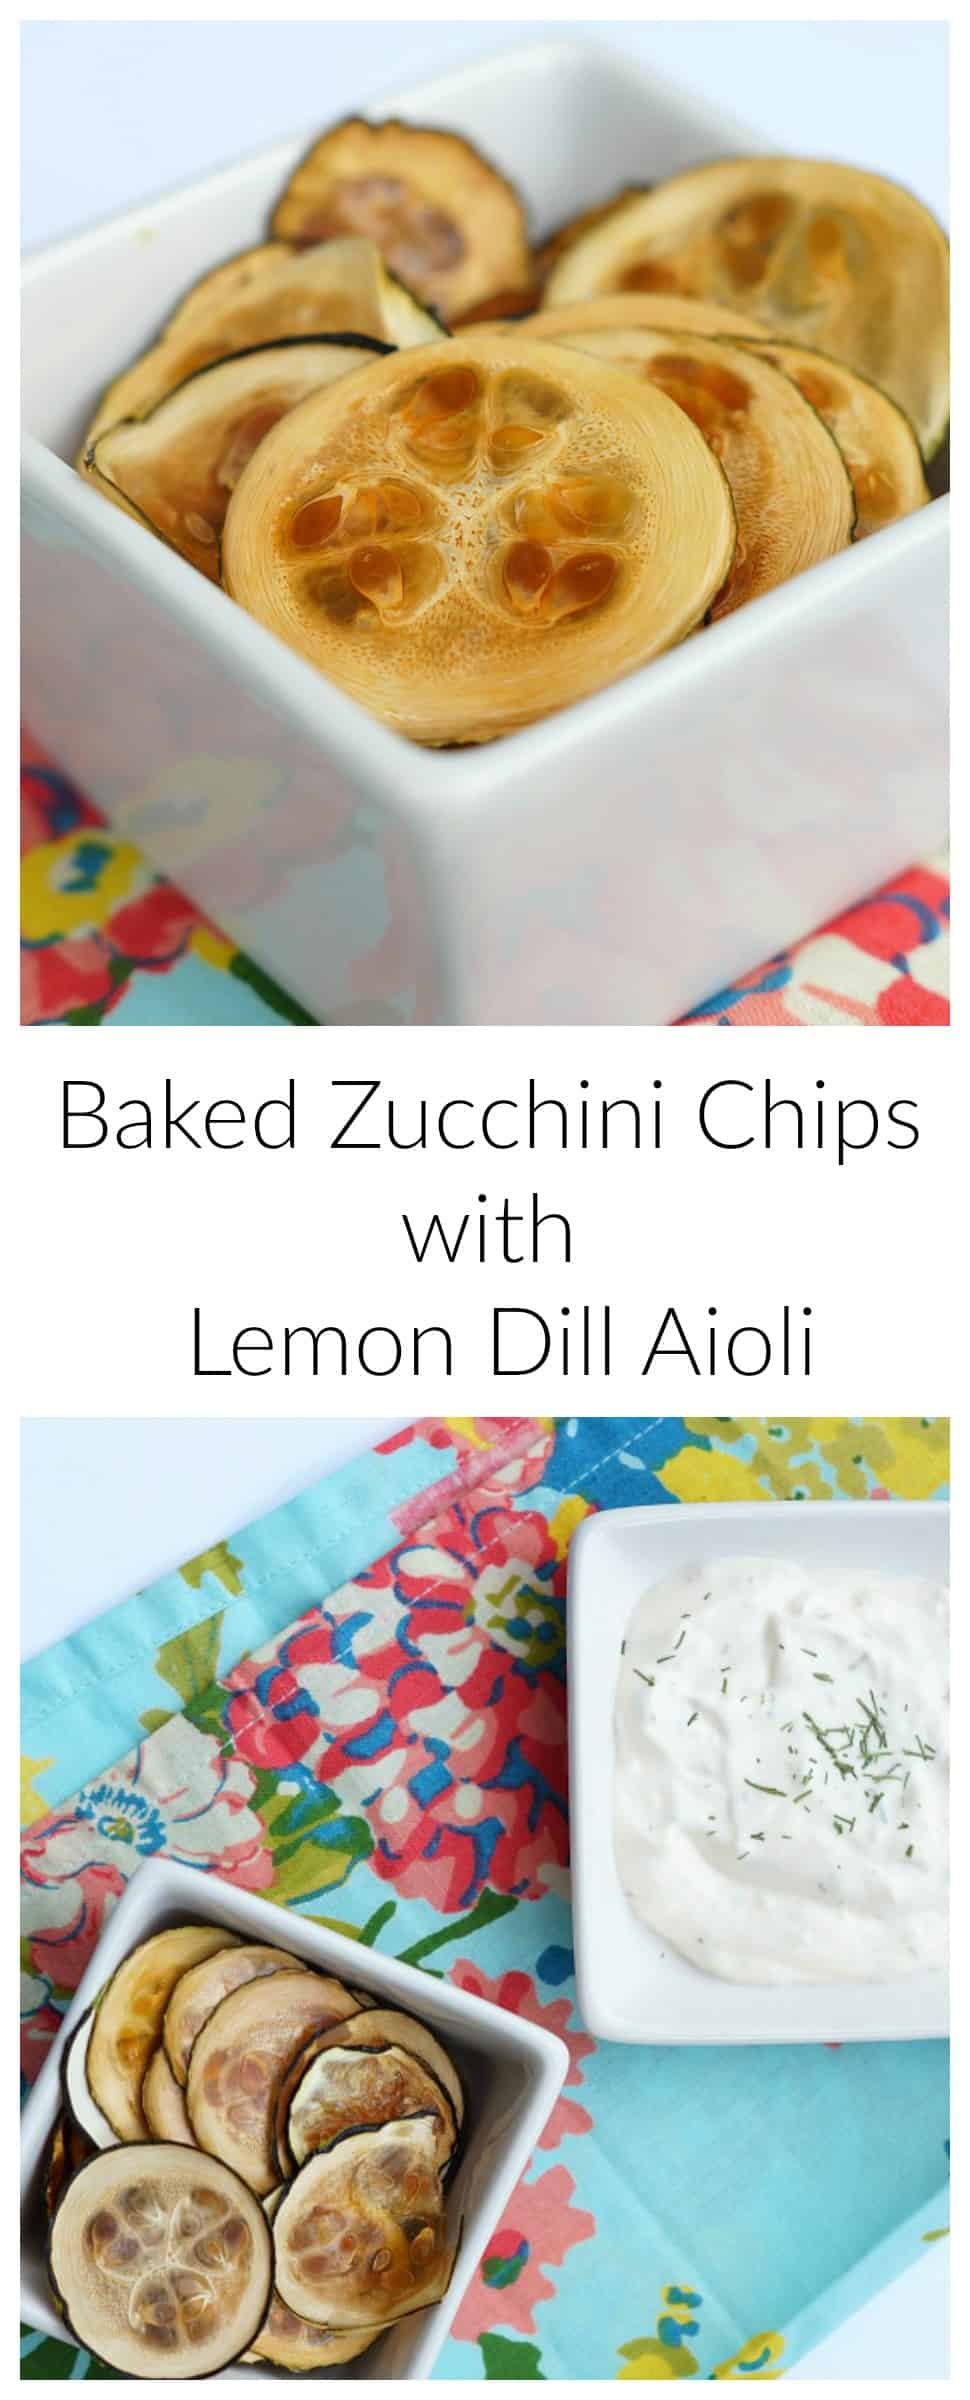 Okay these zucchini chips are so DELICIOUS! Such a great healthy way to curb that craving!